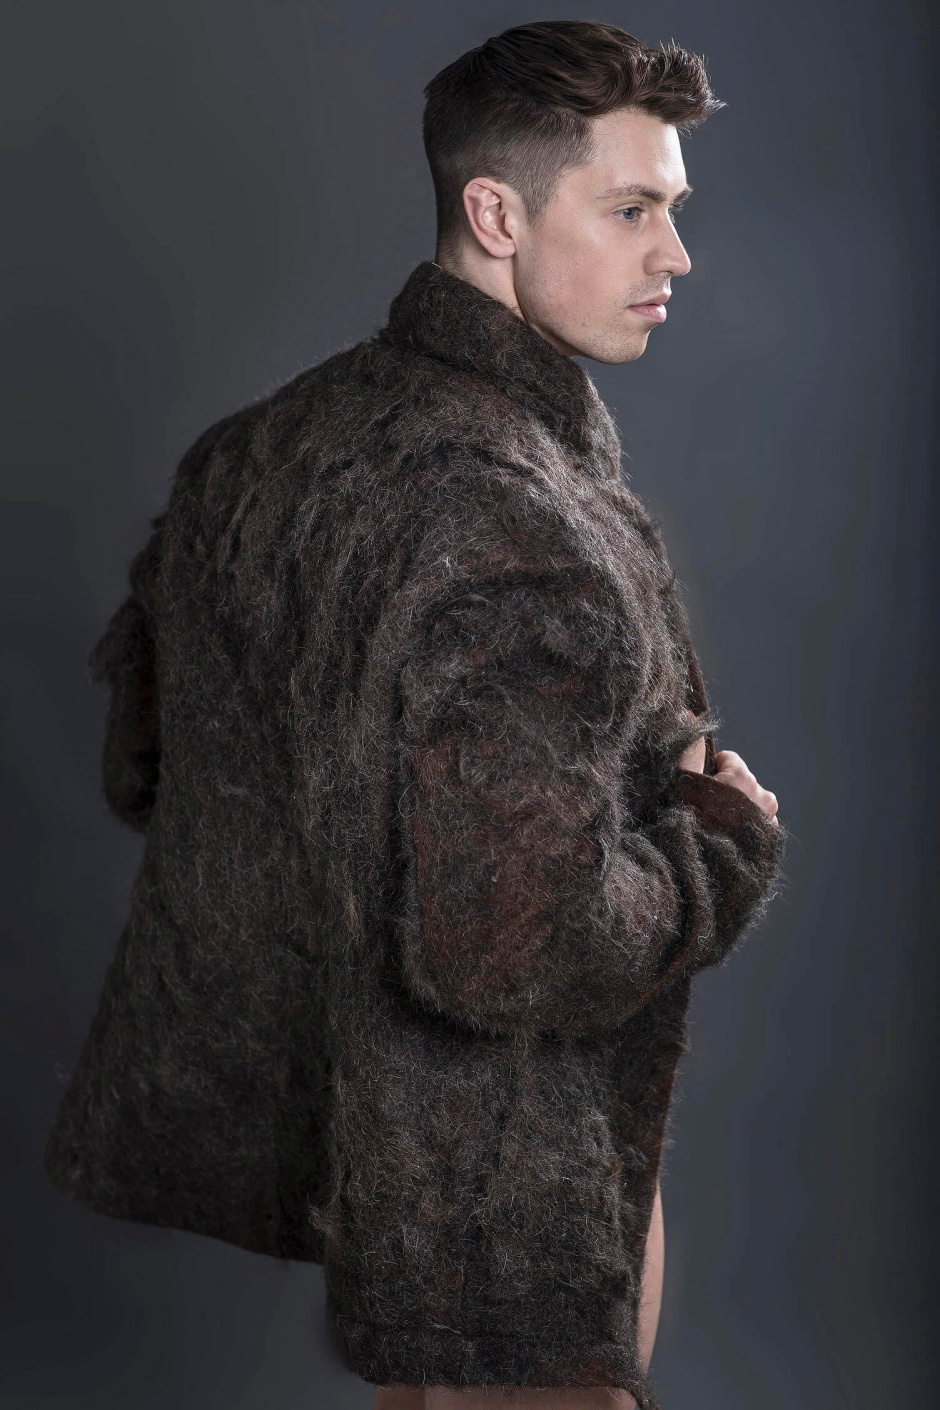 Man-Fur Coat-ure: world's first fur coat made from 100% male che